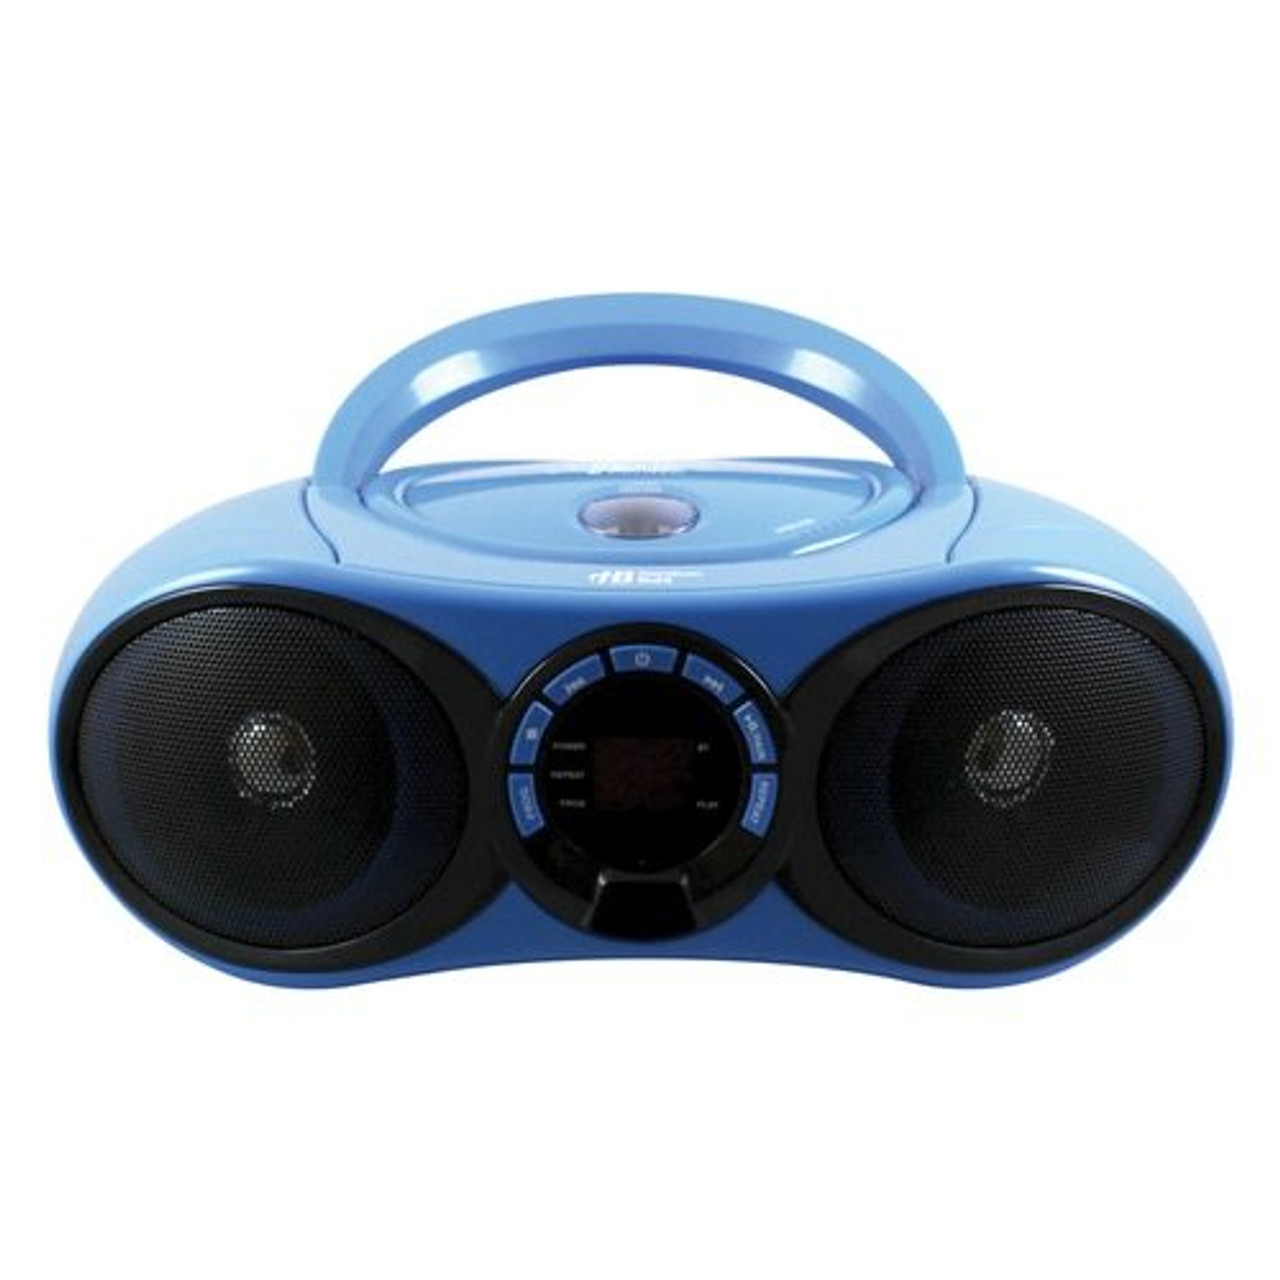 hight resolution of front of audiomvp boombox cd fm media player with bluetooth receiver